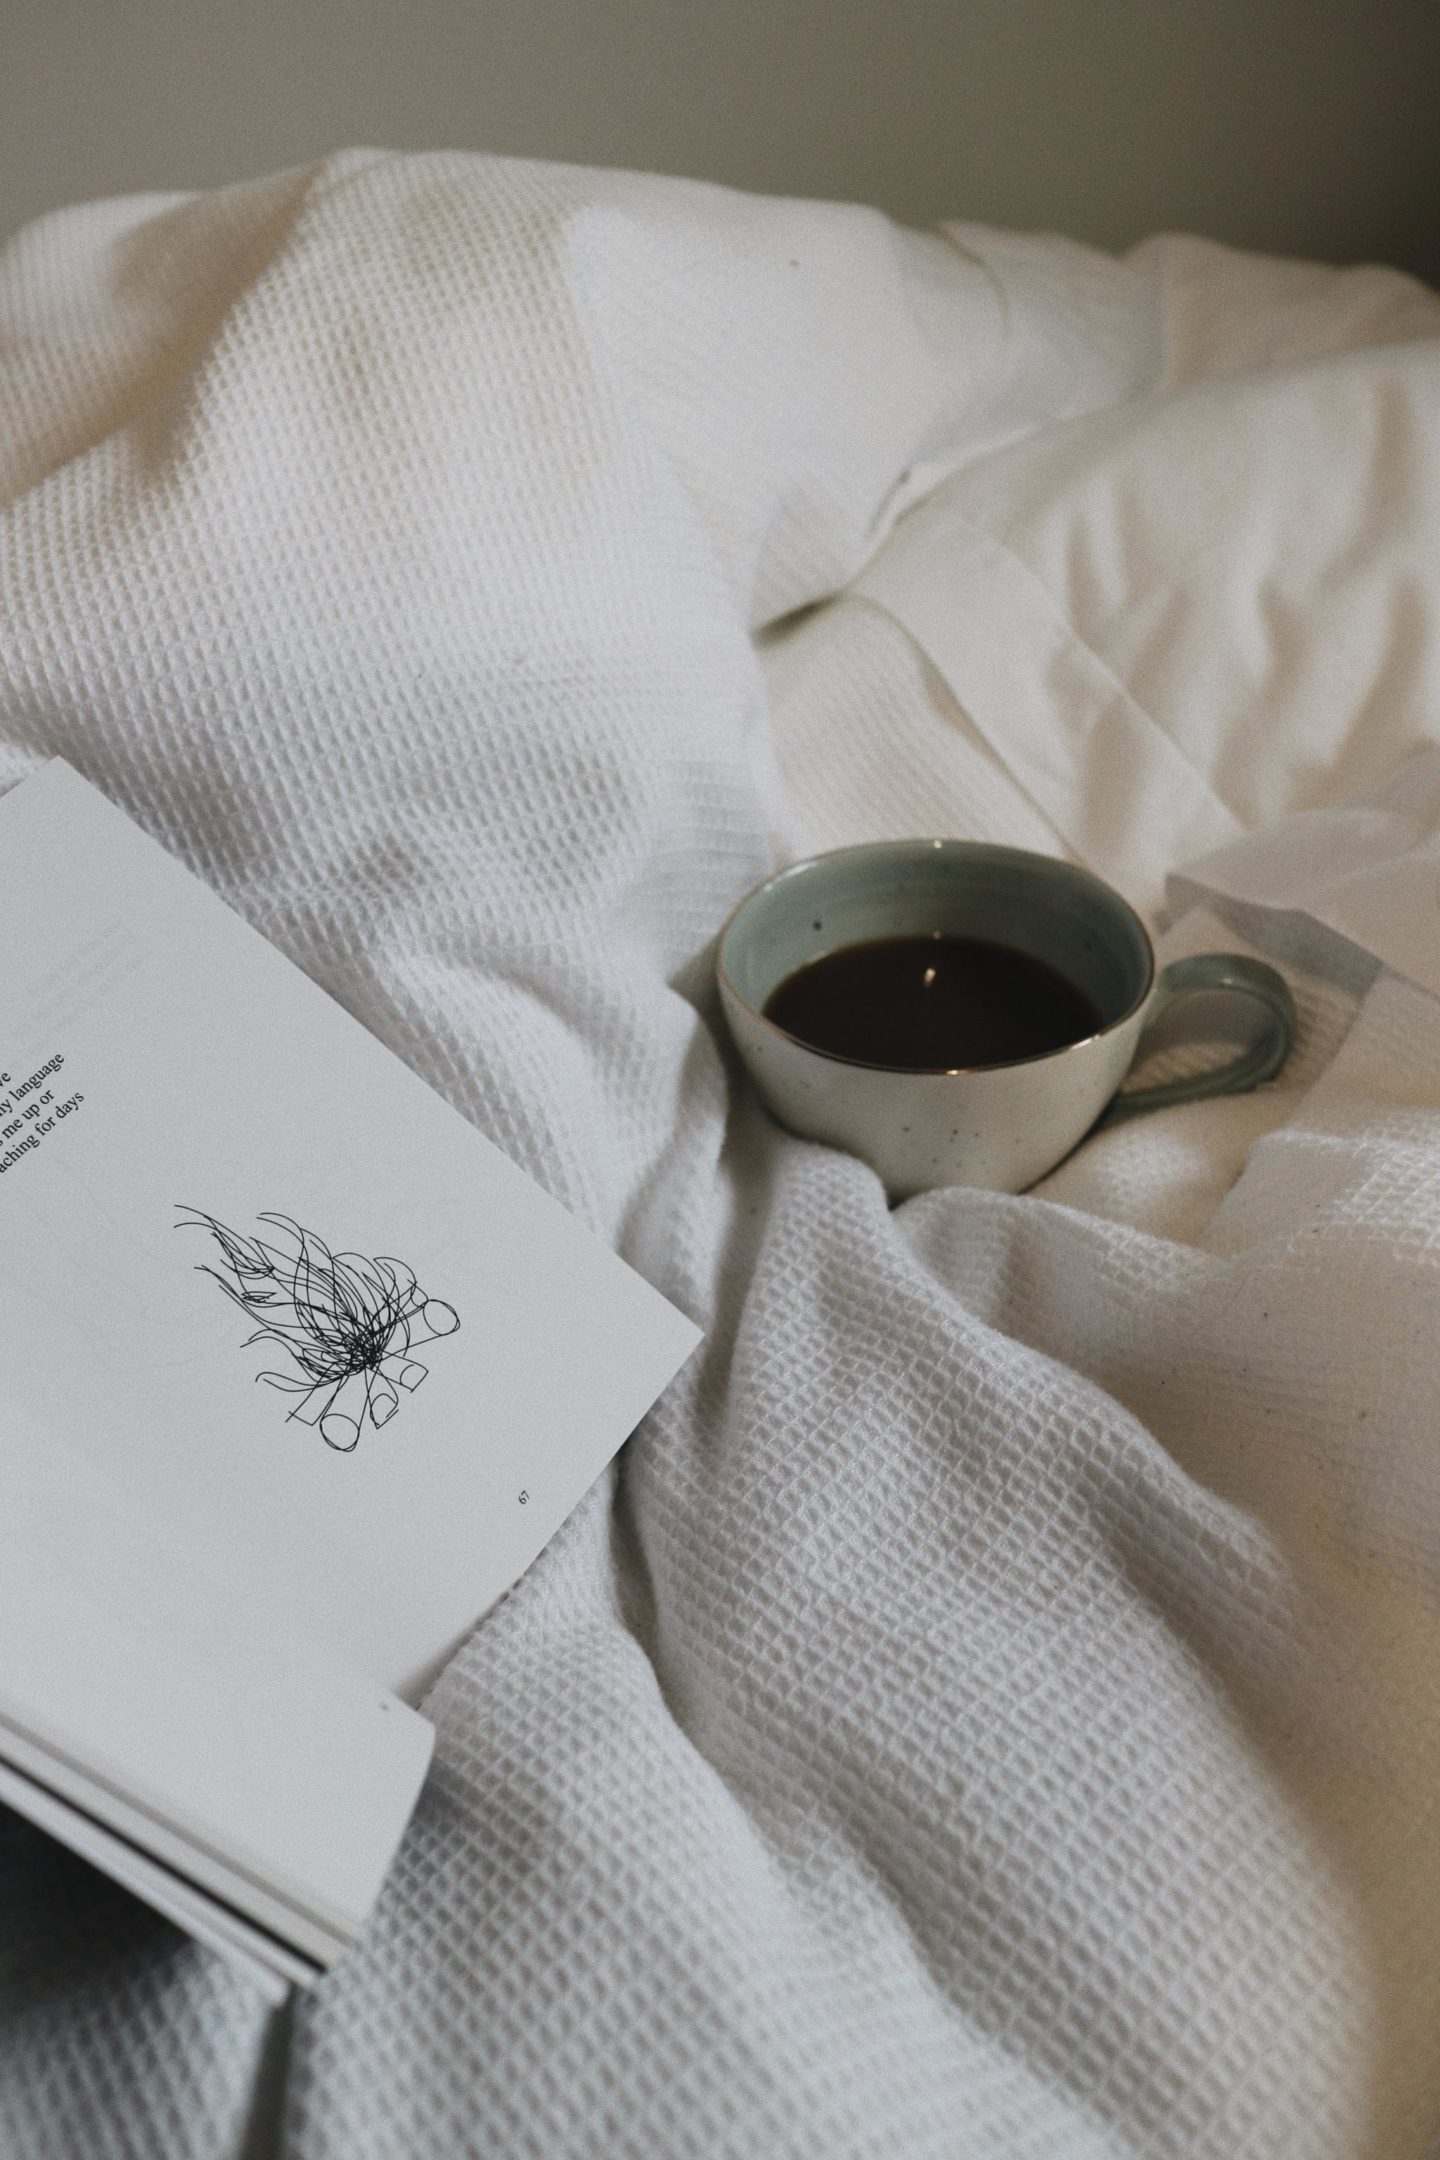 cold rainy days, coffee, bed